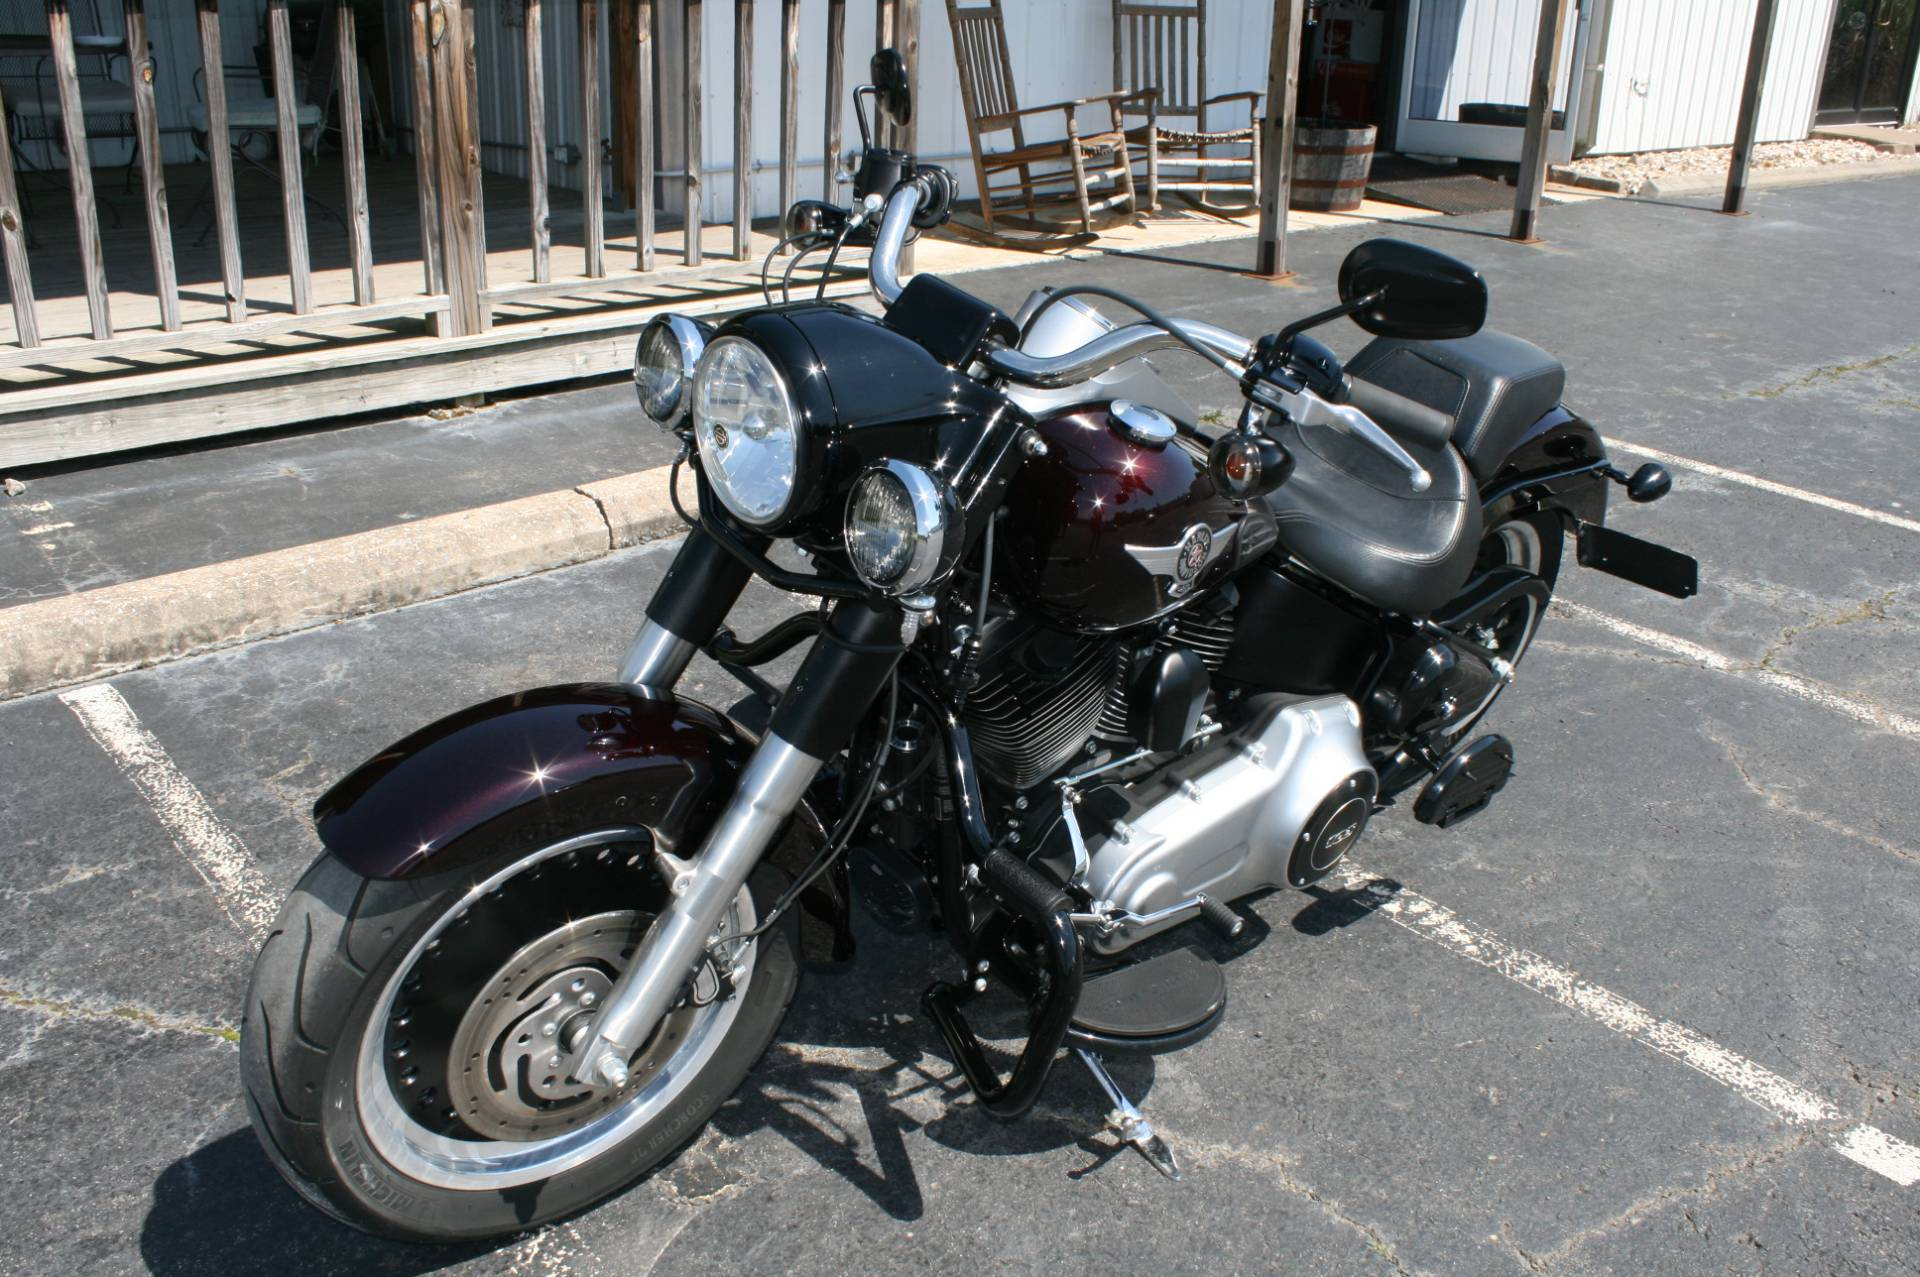 2014 Harley-Davidson FLSTFB FAT BOY LOW in Greenbrier, Arkansas